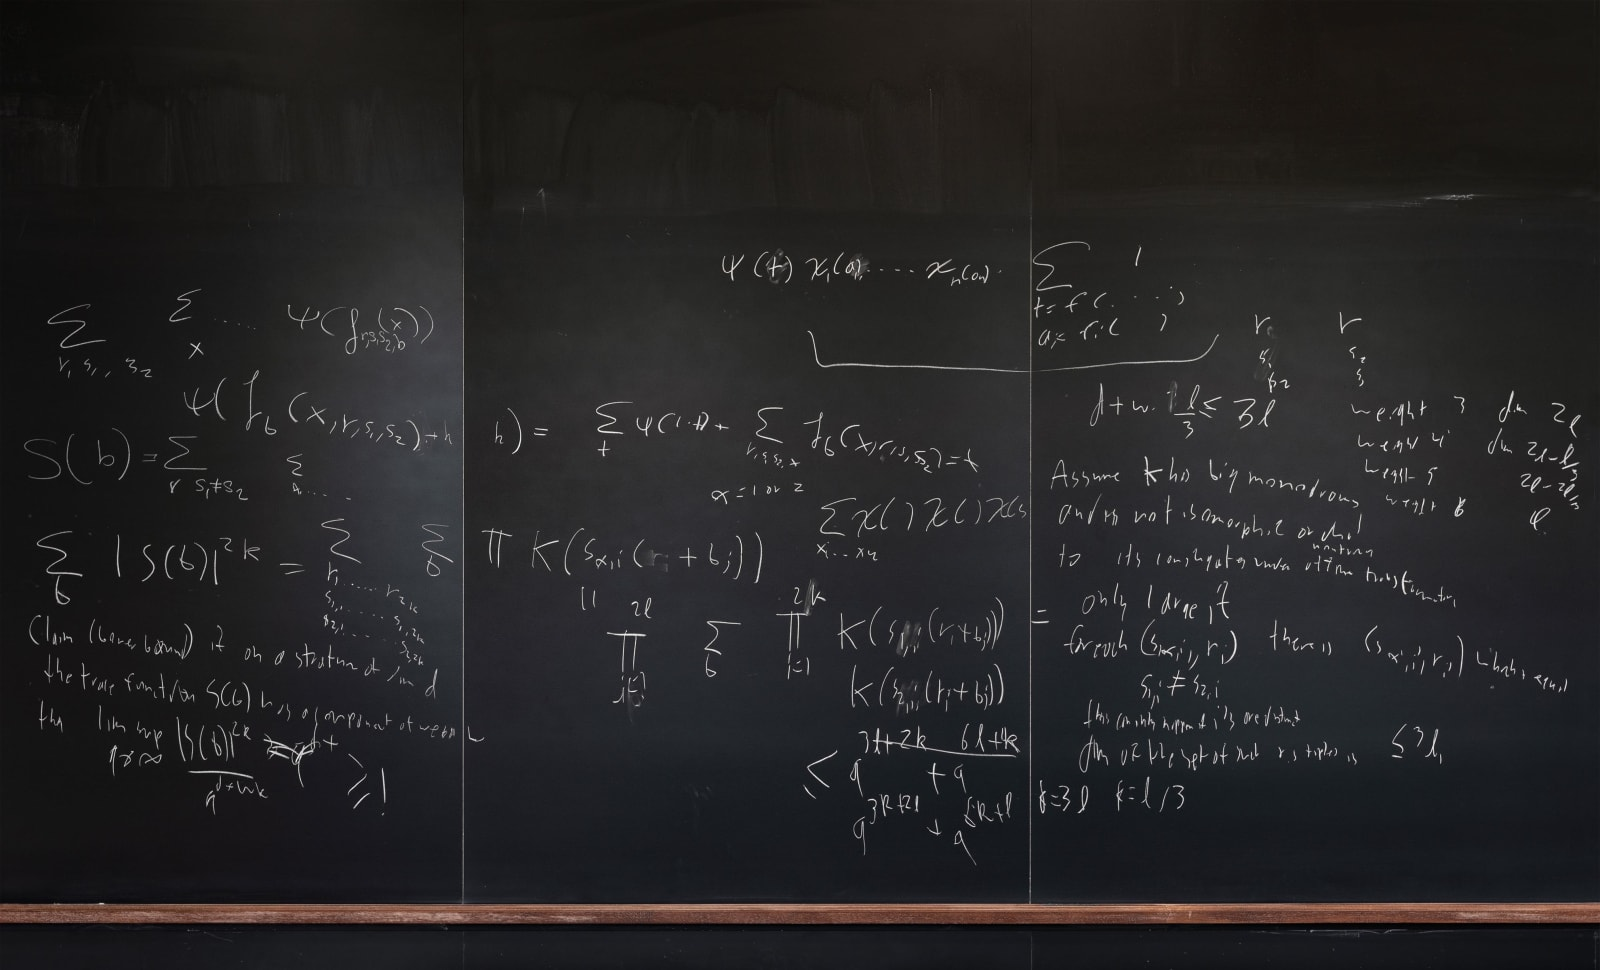 Chalkboard with formulas by Will Sawin, Columbia University, from the Do Not Erase series by Jessica Wynne